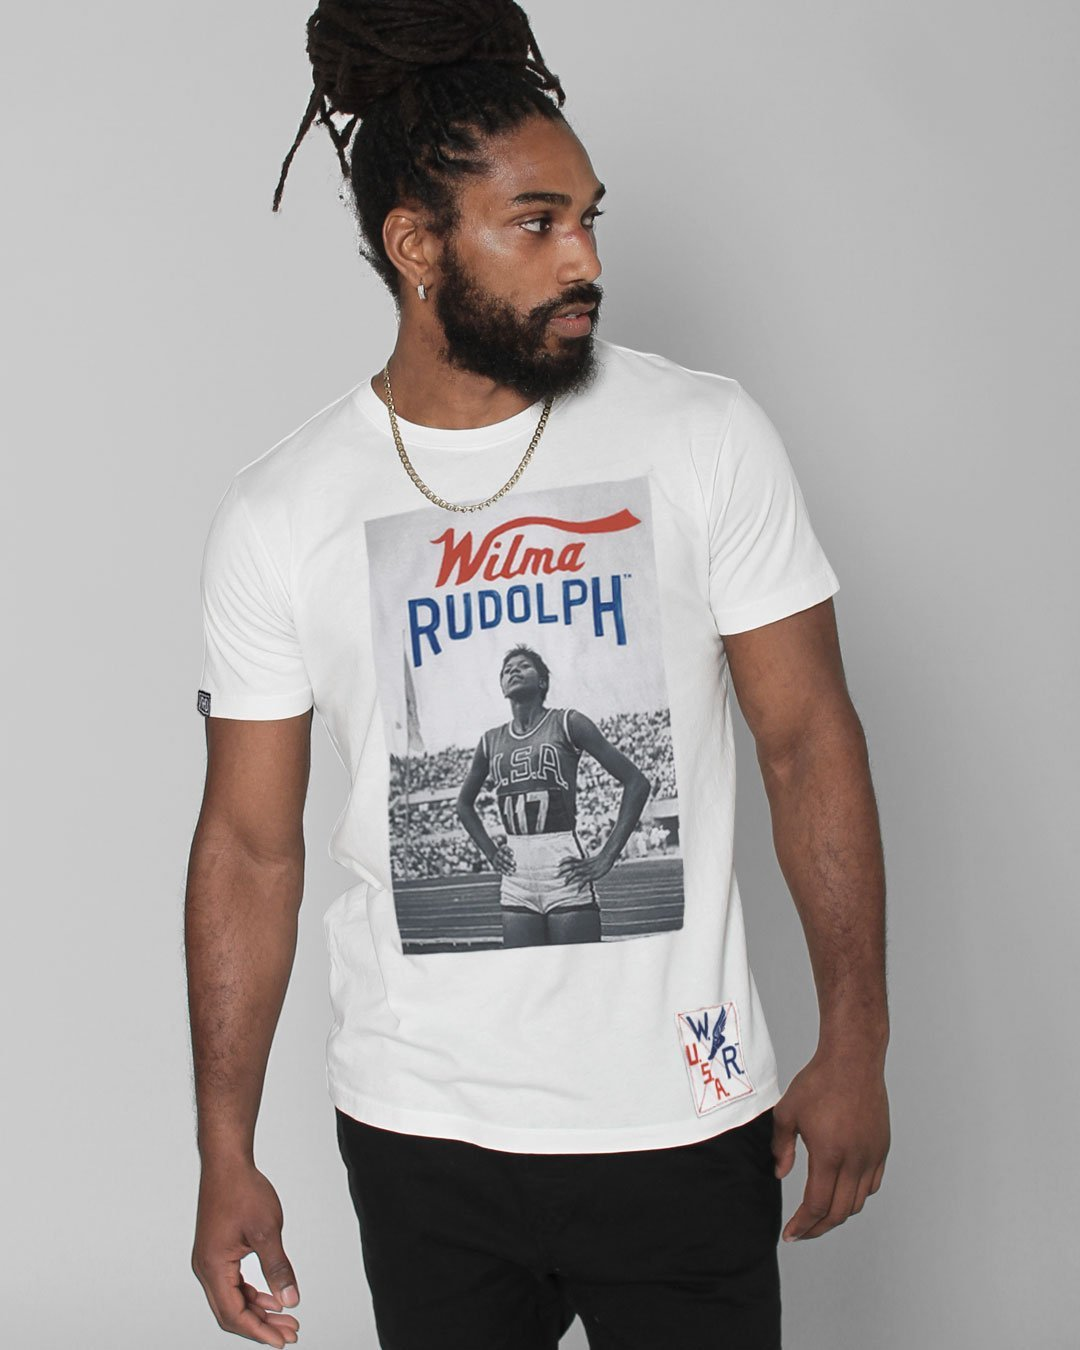 Wilma Rudolph Photo Tee - Roots of Inc dba Roots of Fight